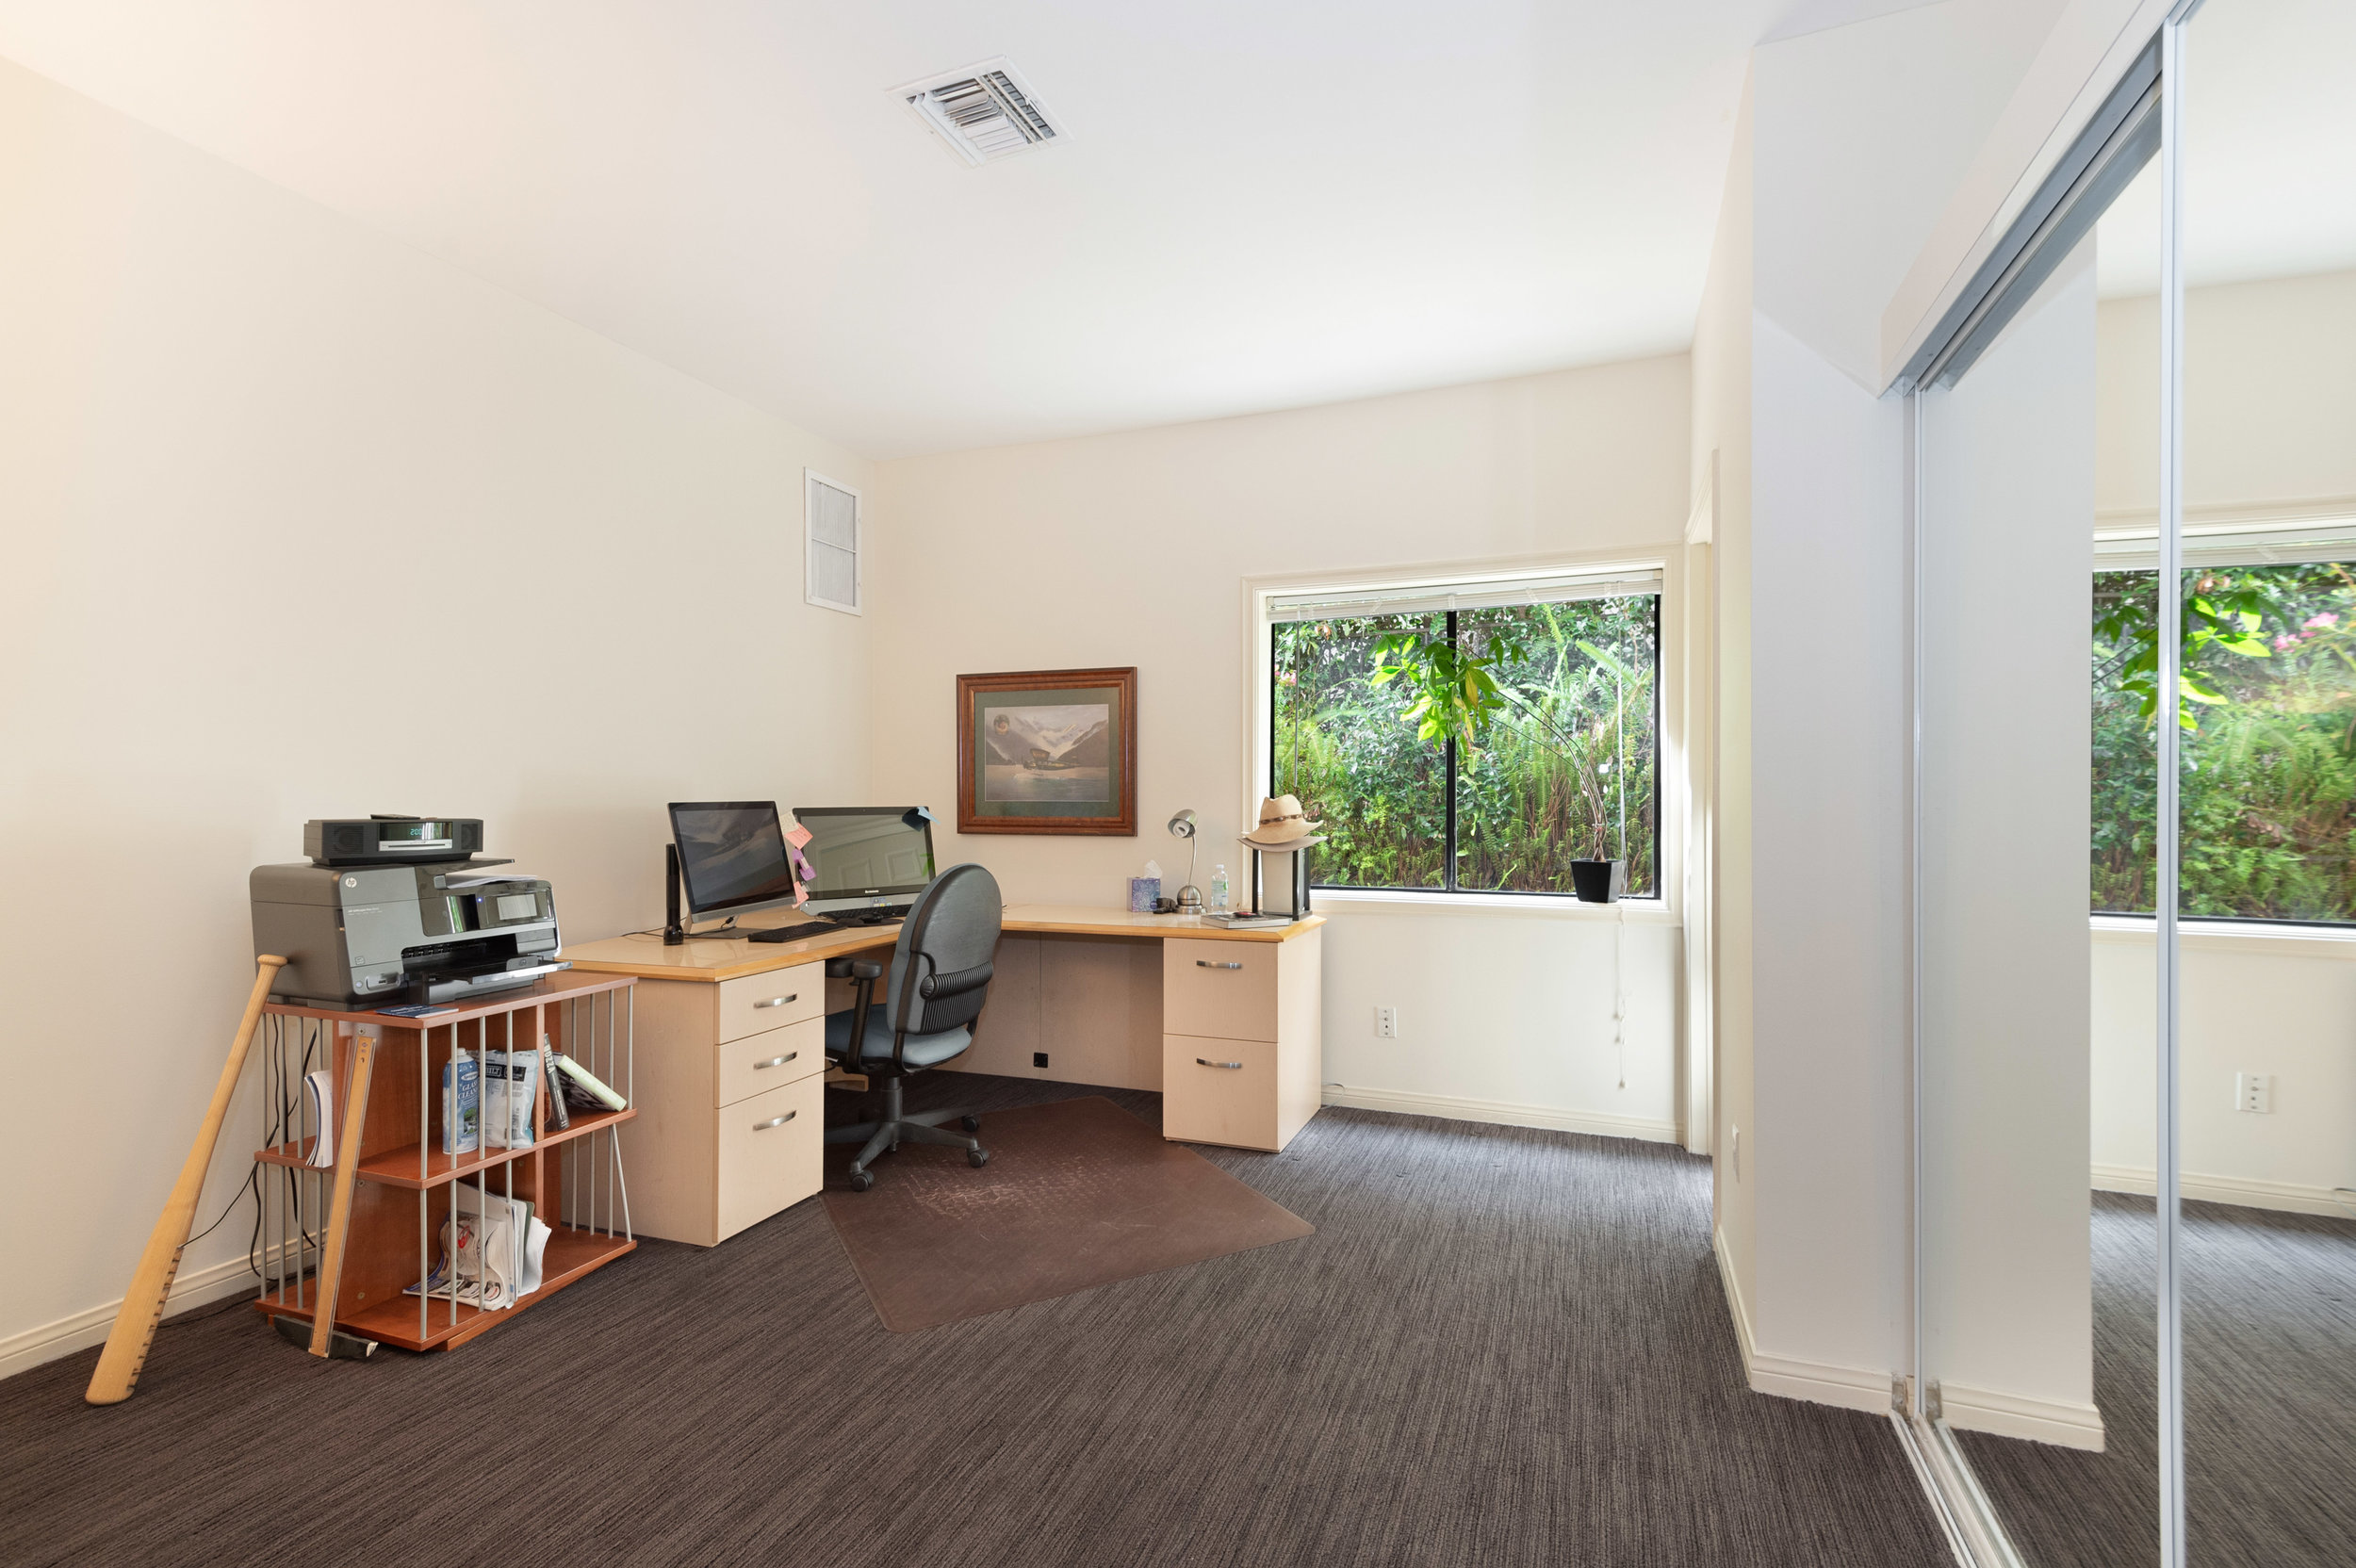 025 office 12027 Talus Place Beverly Hills 90210 For Sale Lease The Malibu Life Team Luxury Real Estate.jpg